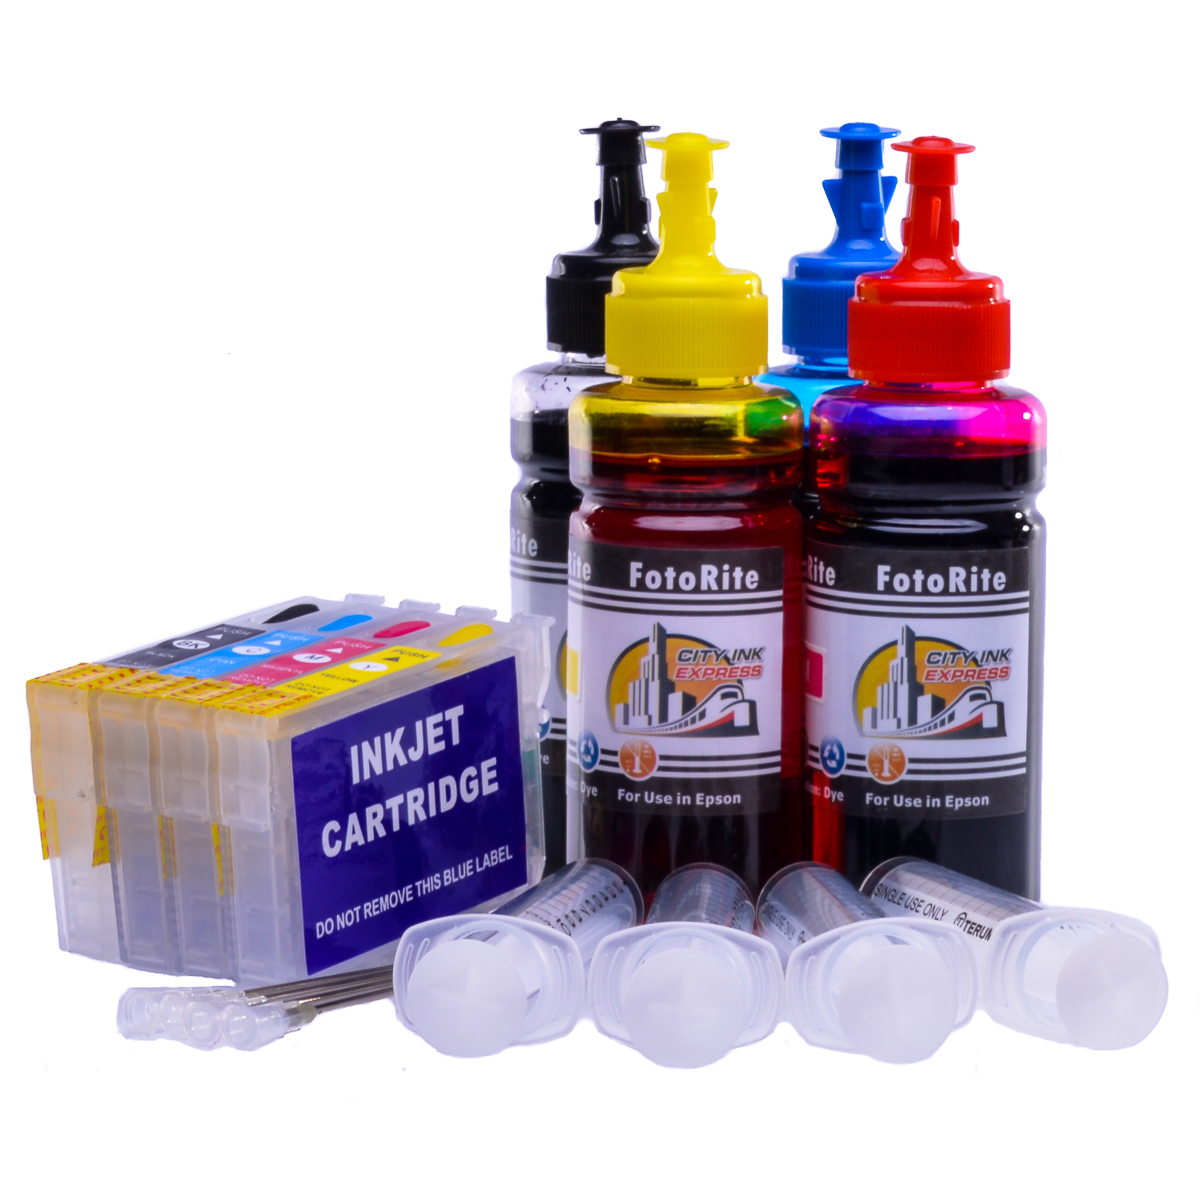 Multipack Cheap printer cartridges for Epson XP-245 | Refillable dye and pigment ink